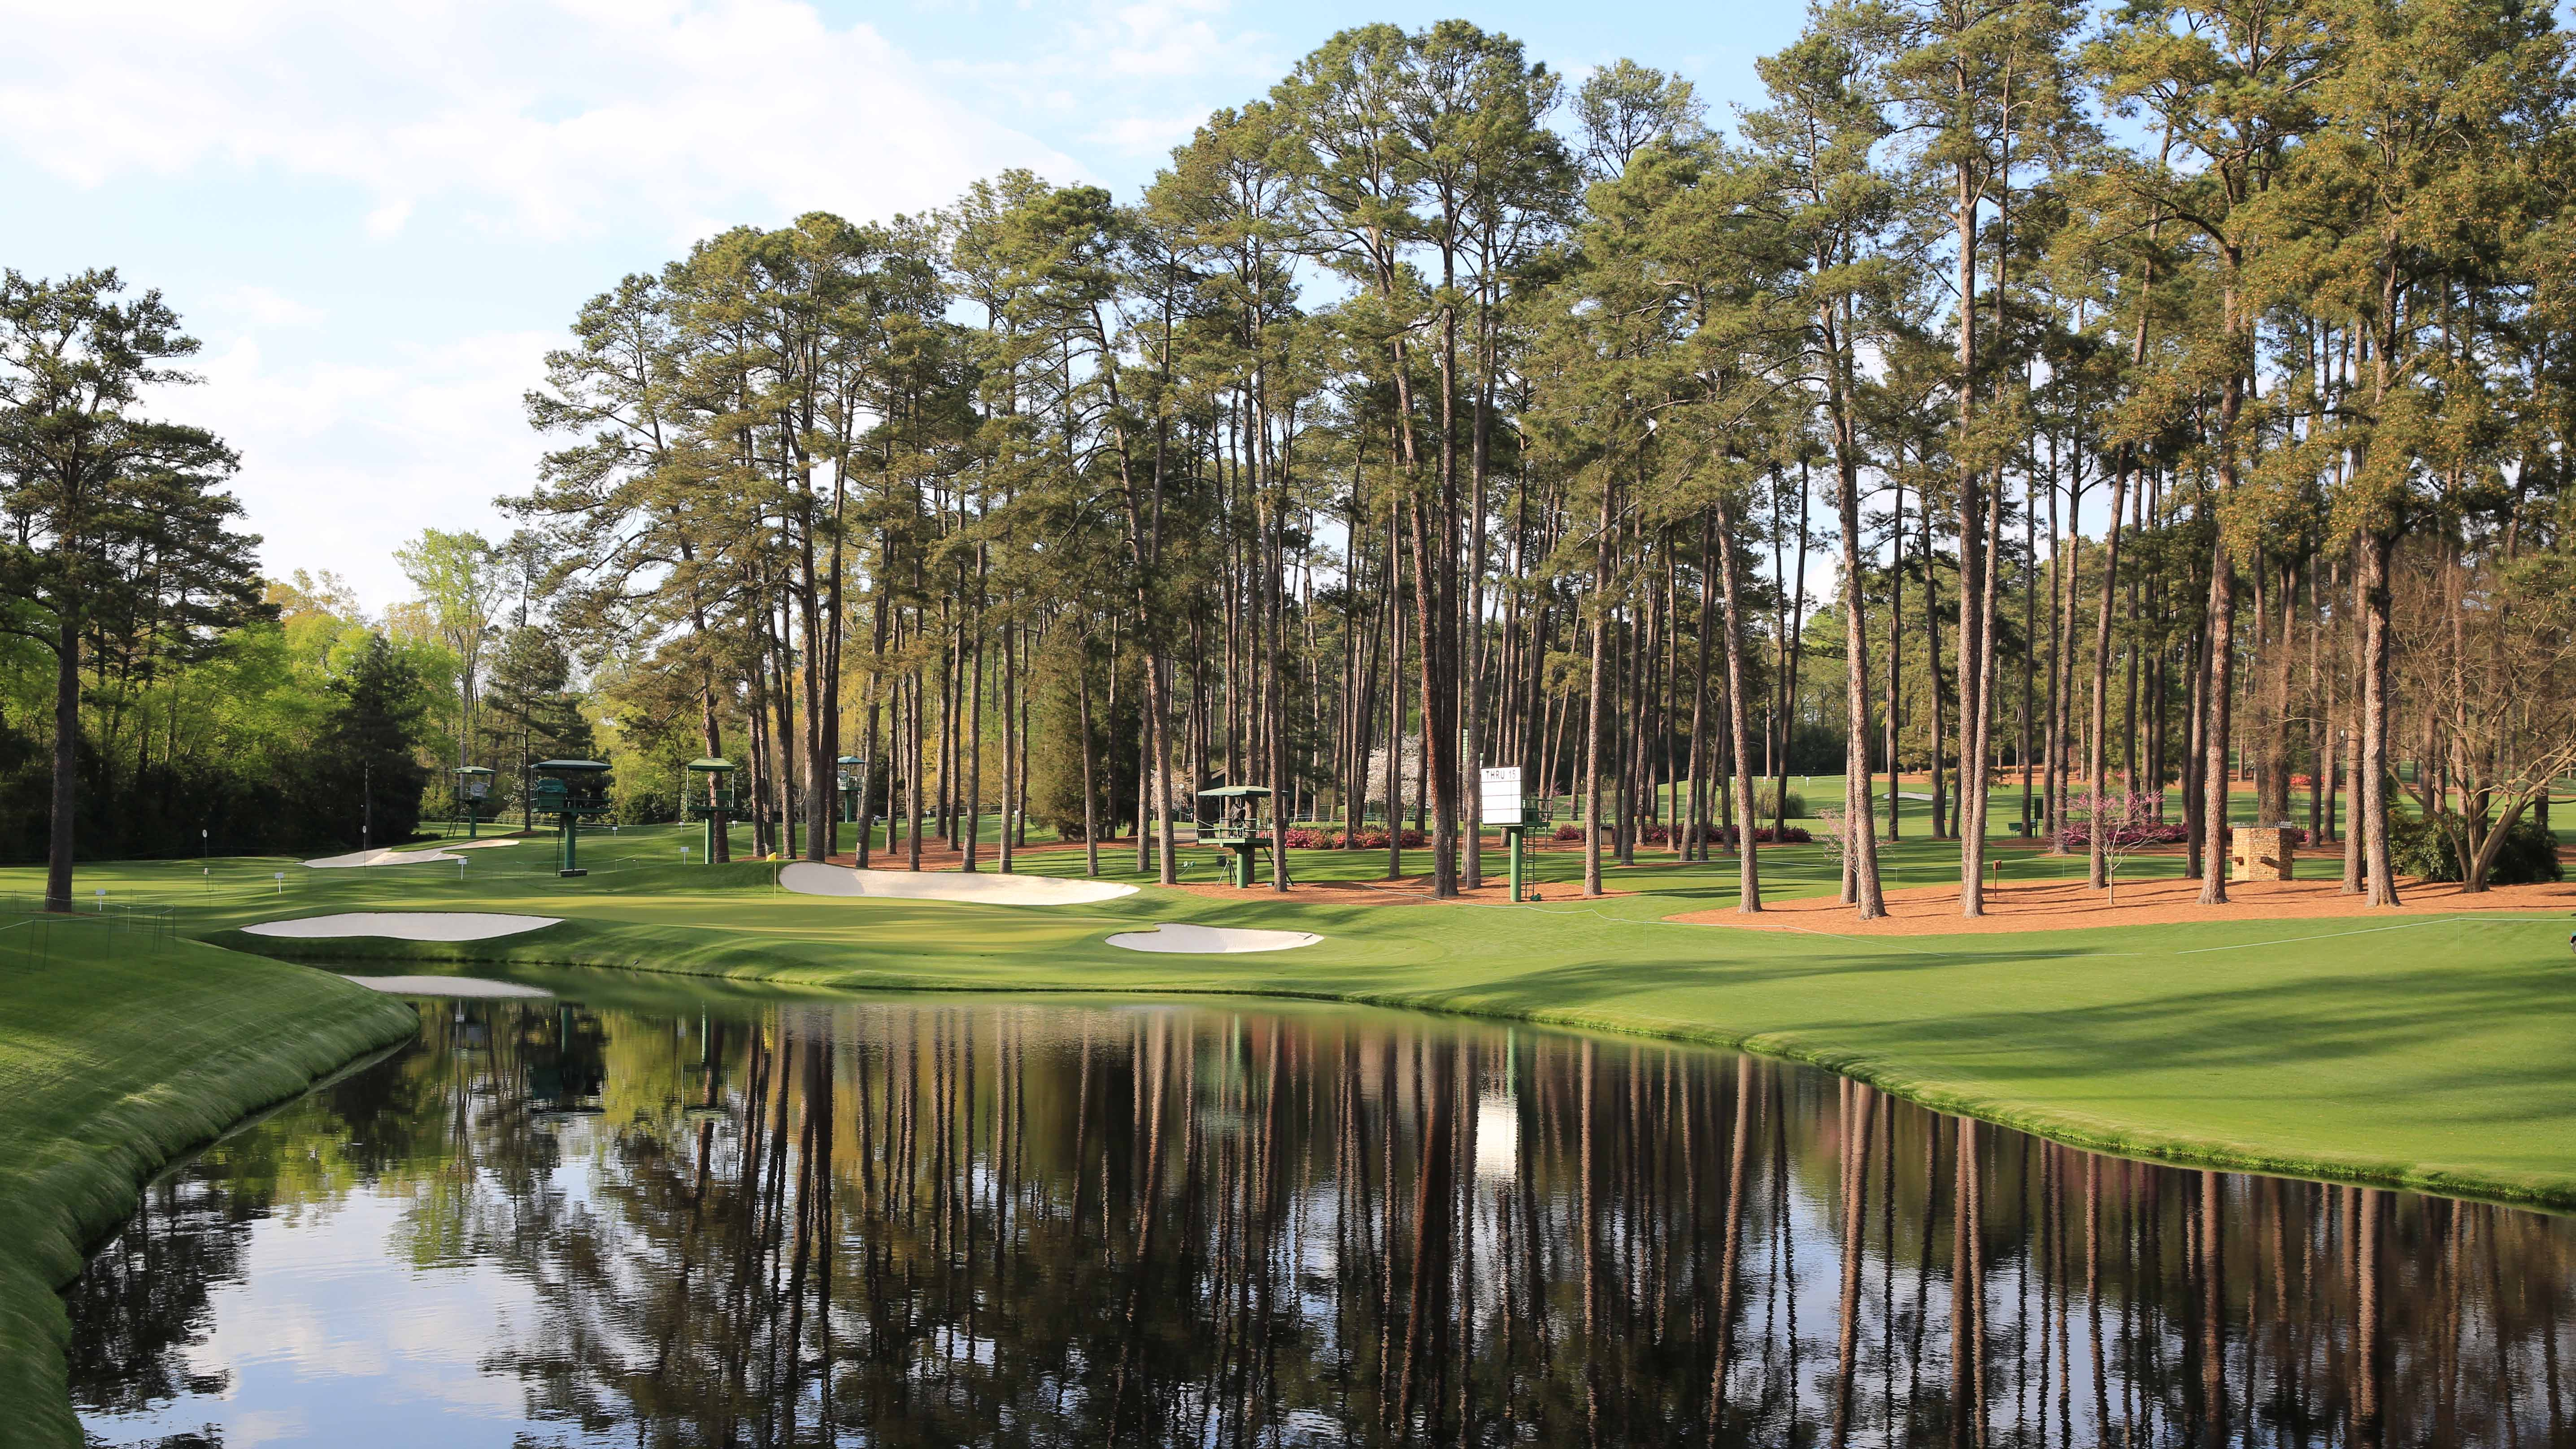 Win a trip to Augusta in 2022